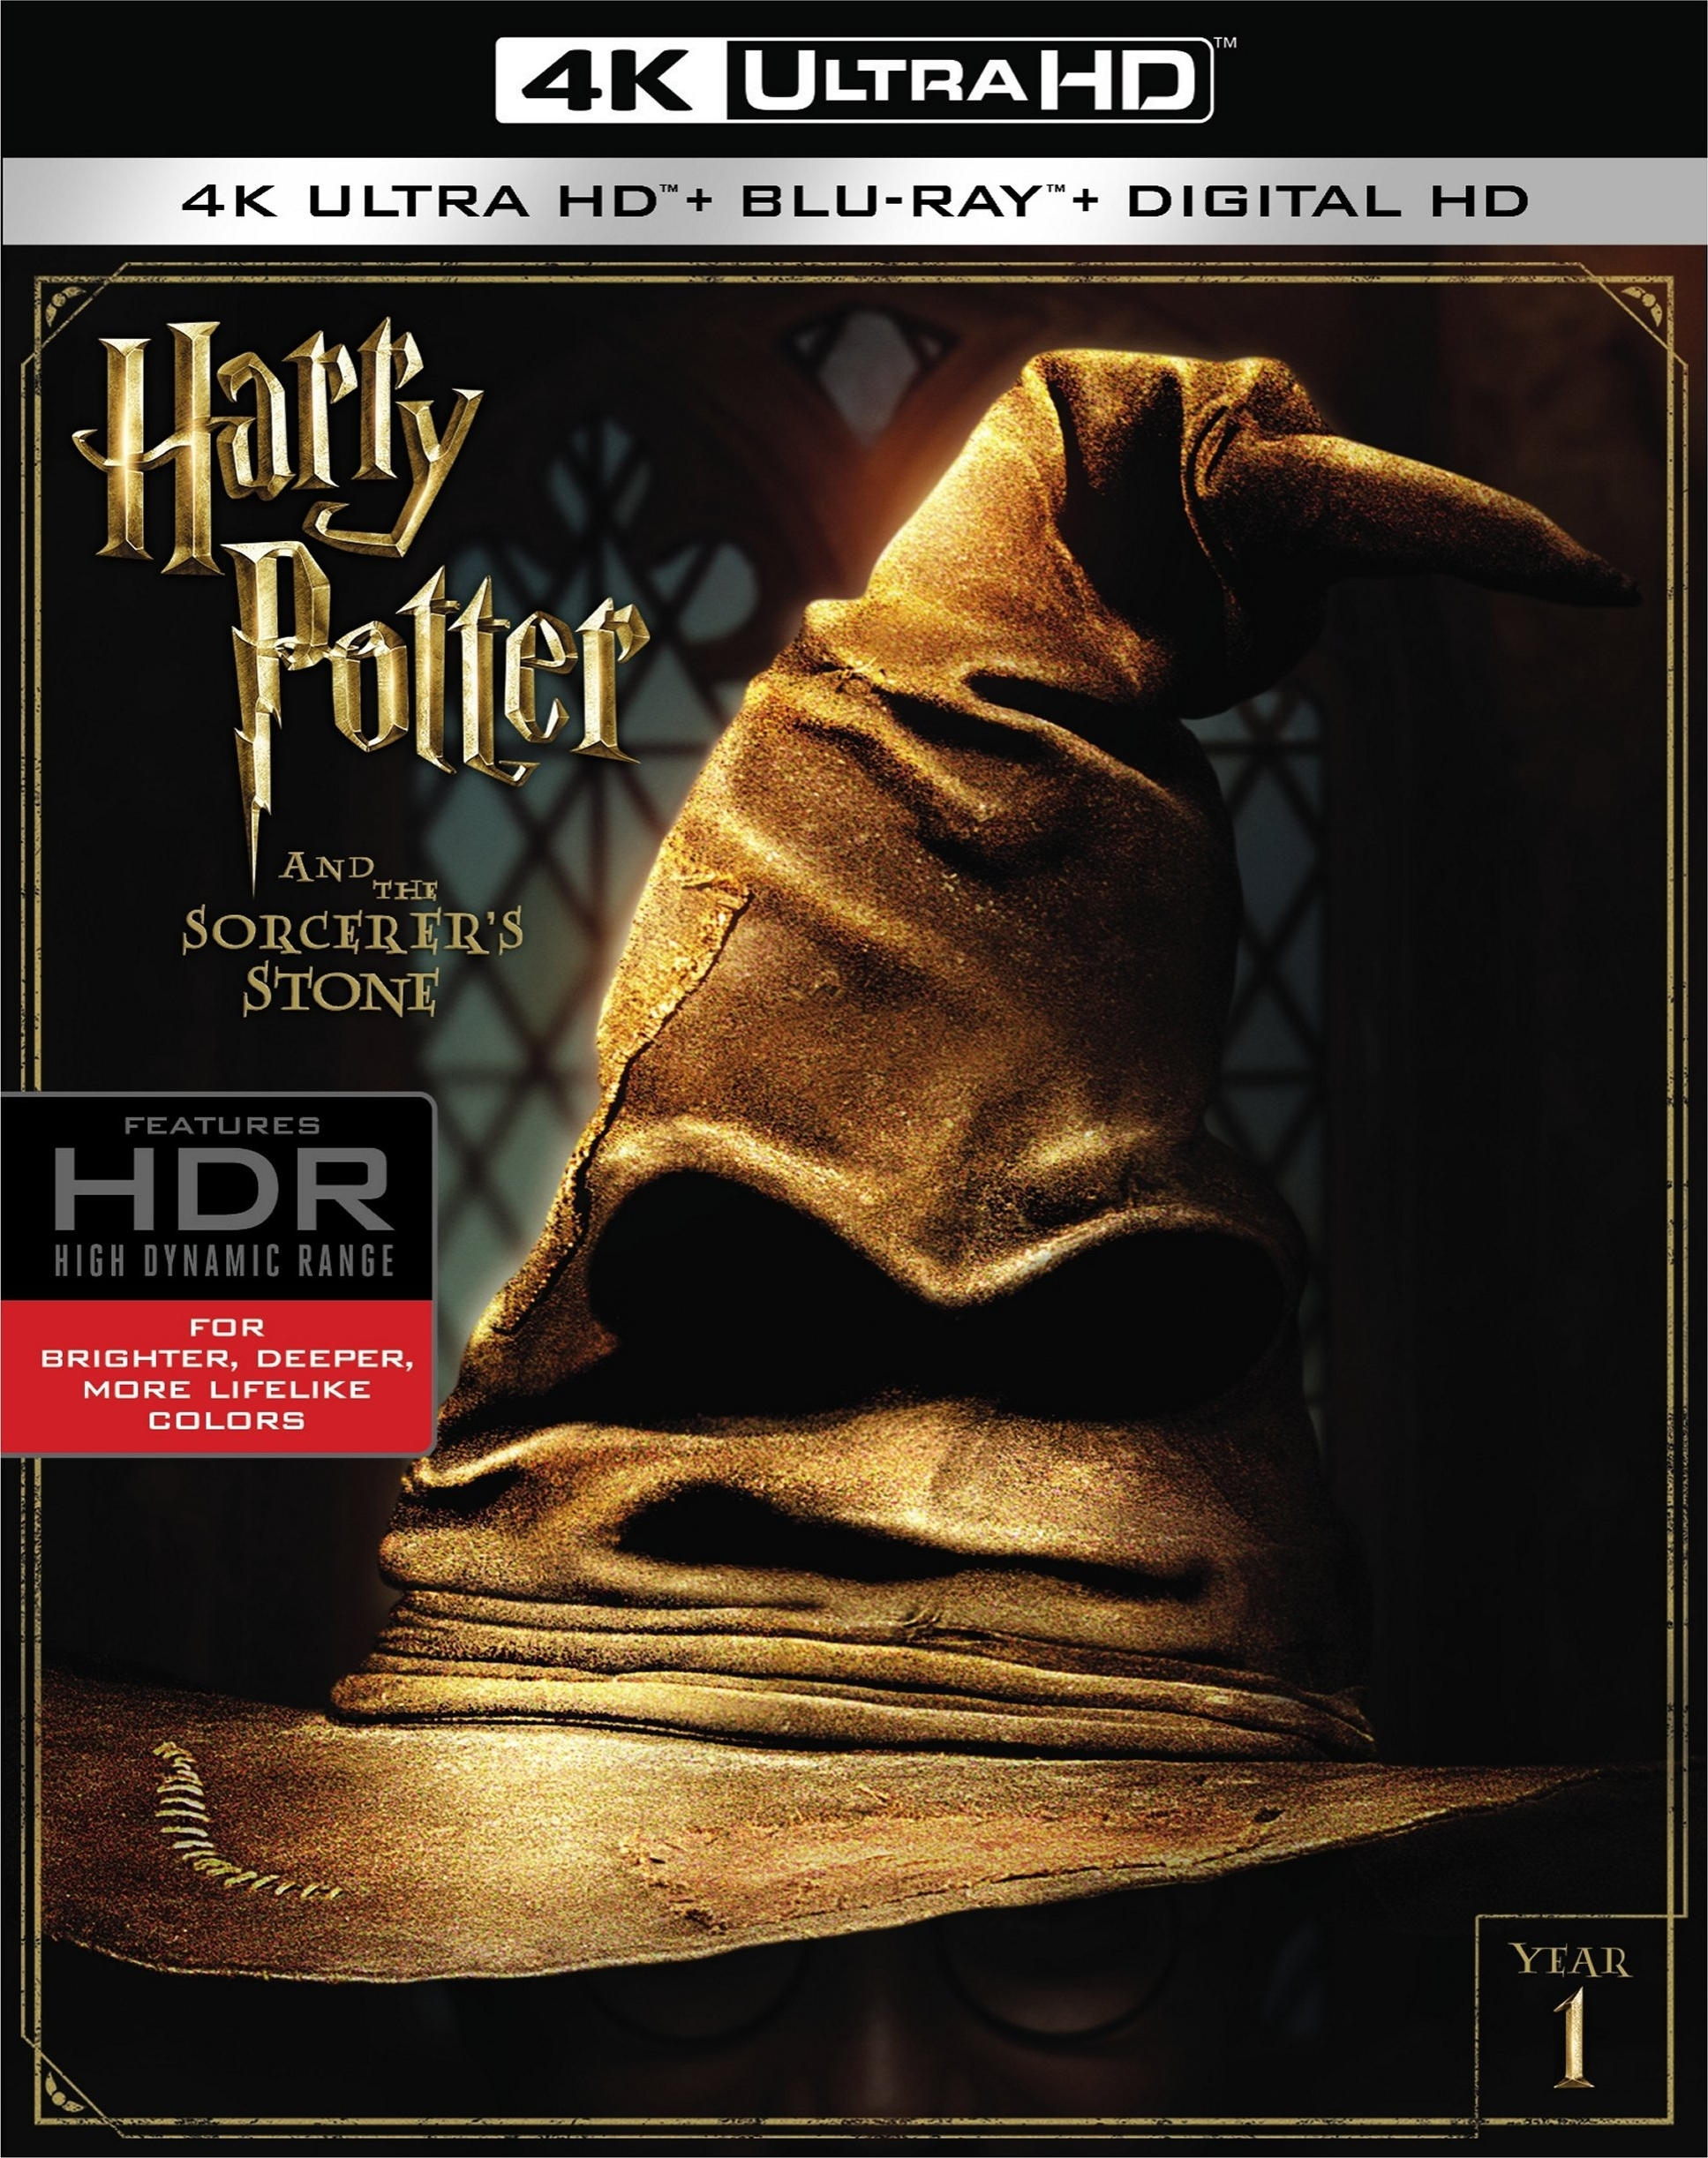 Harry Potter and the Sorcerers Stone 4K (2001) UHD Ultra HD Blu-ray